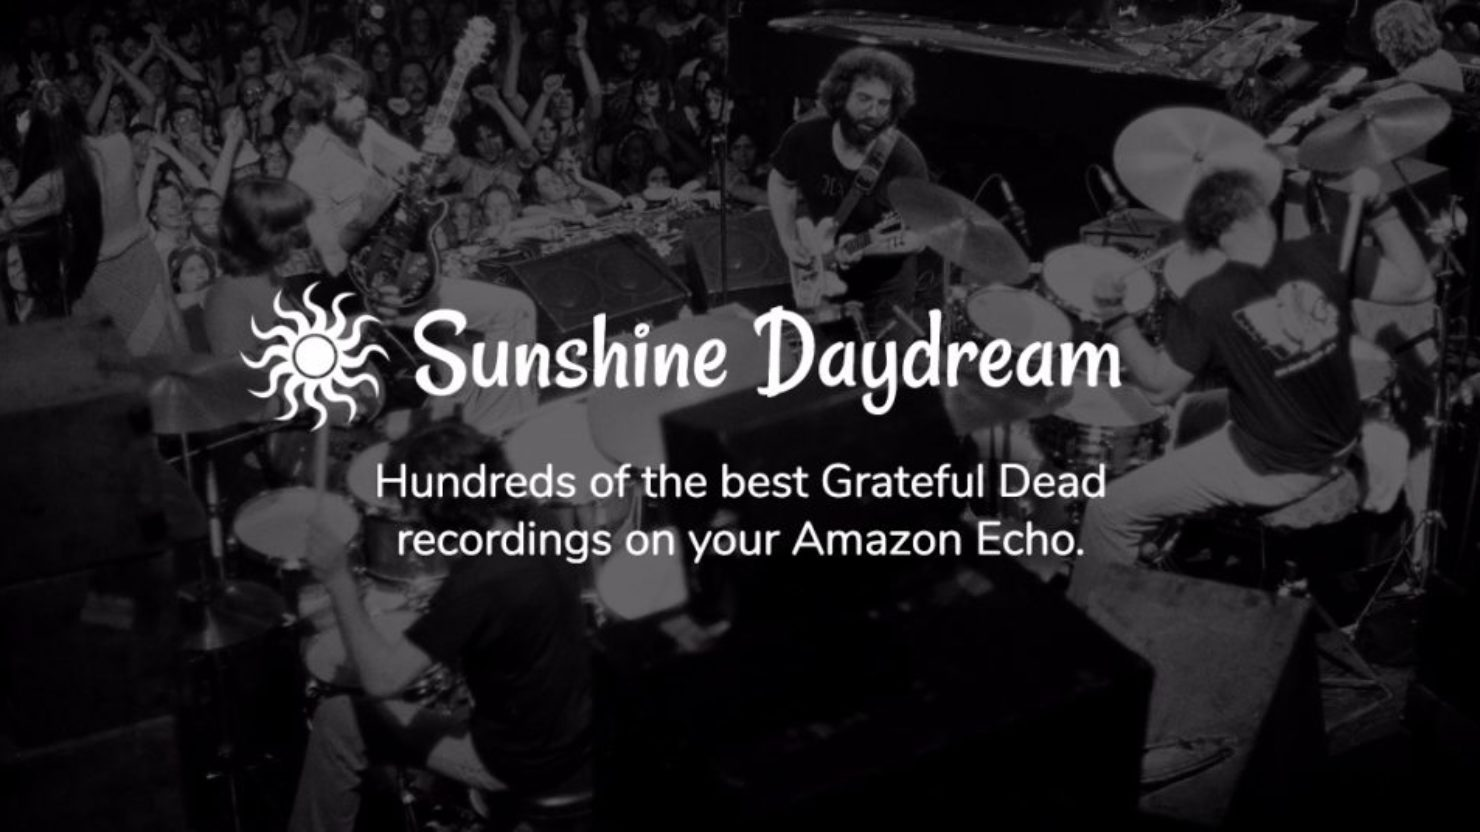 Amazon Echo Adds Sunshine Daydream Skill To Stream Live Dead Shows